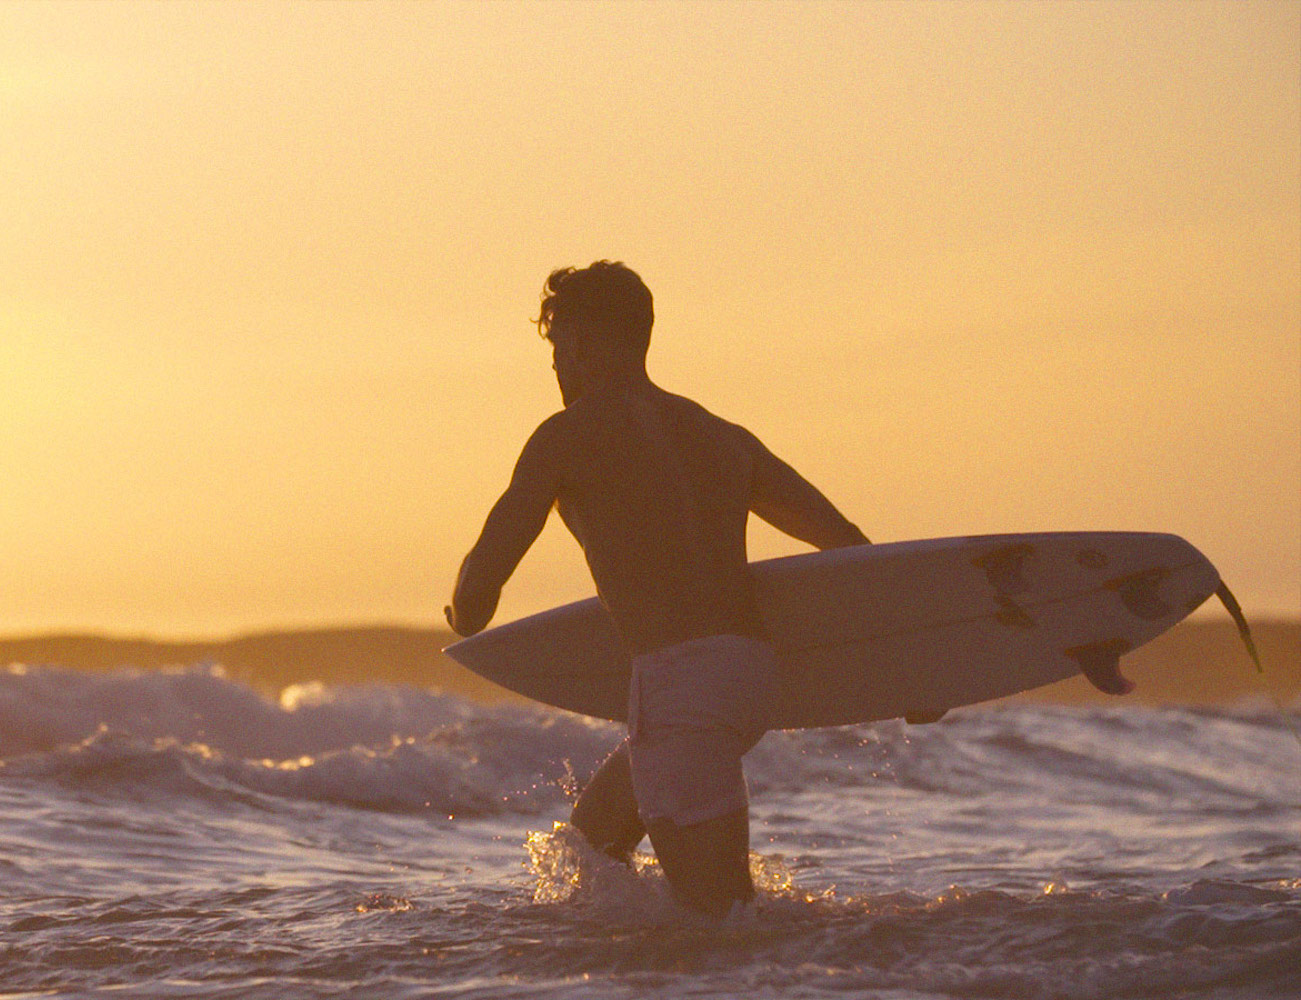 Shorts For Living – by Taylor Boardshort Co.